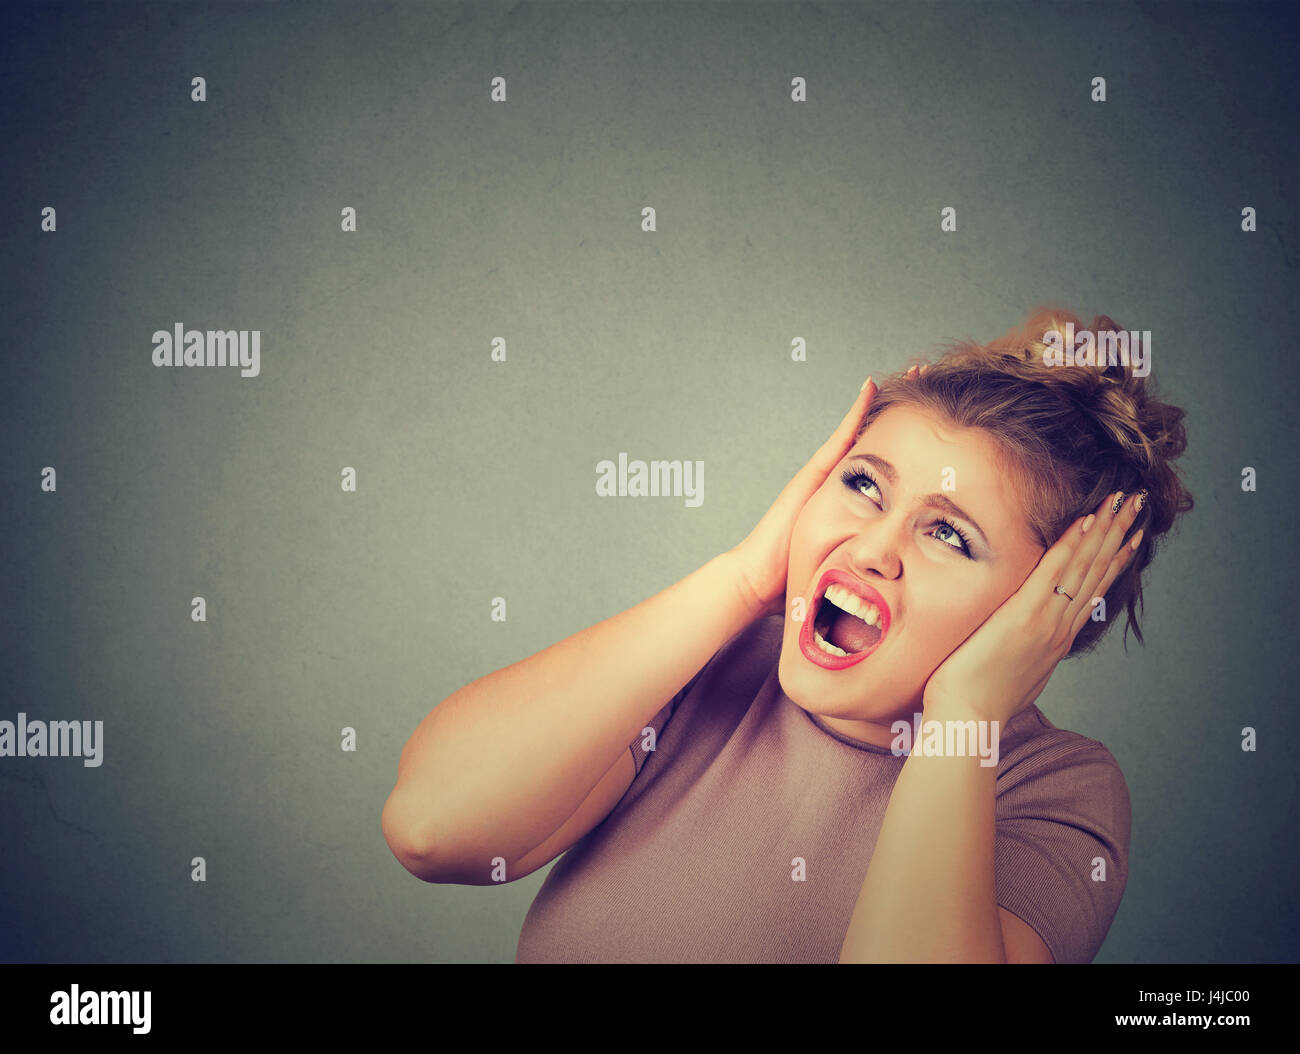 Stressed frustrated woman covering her ears with hands. - Stock Image